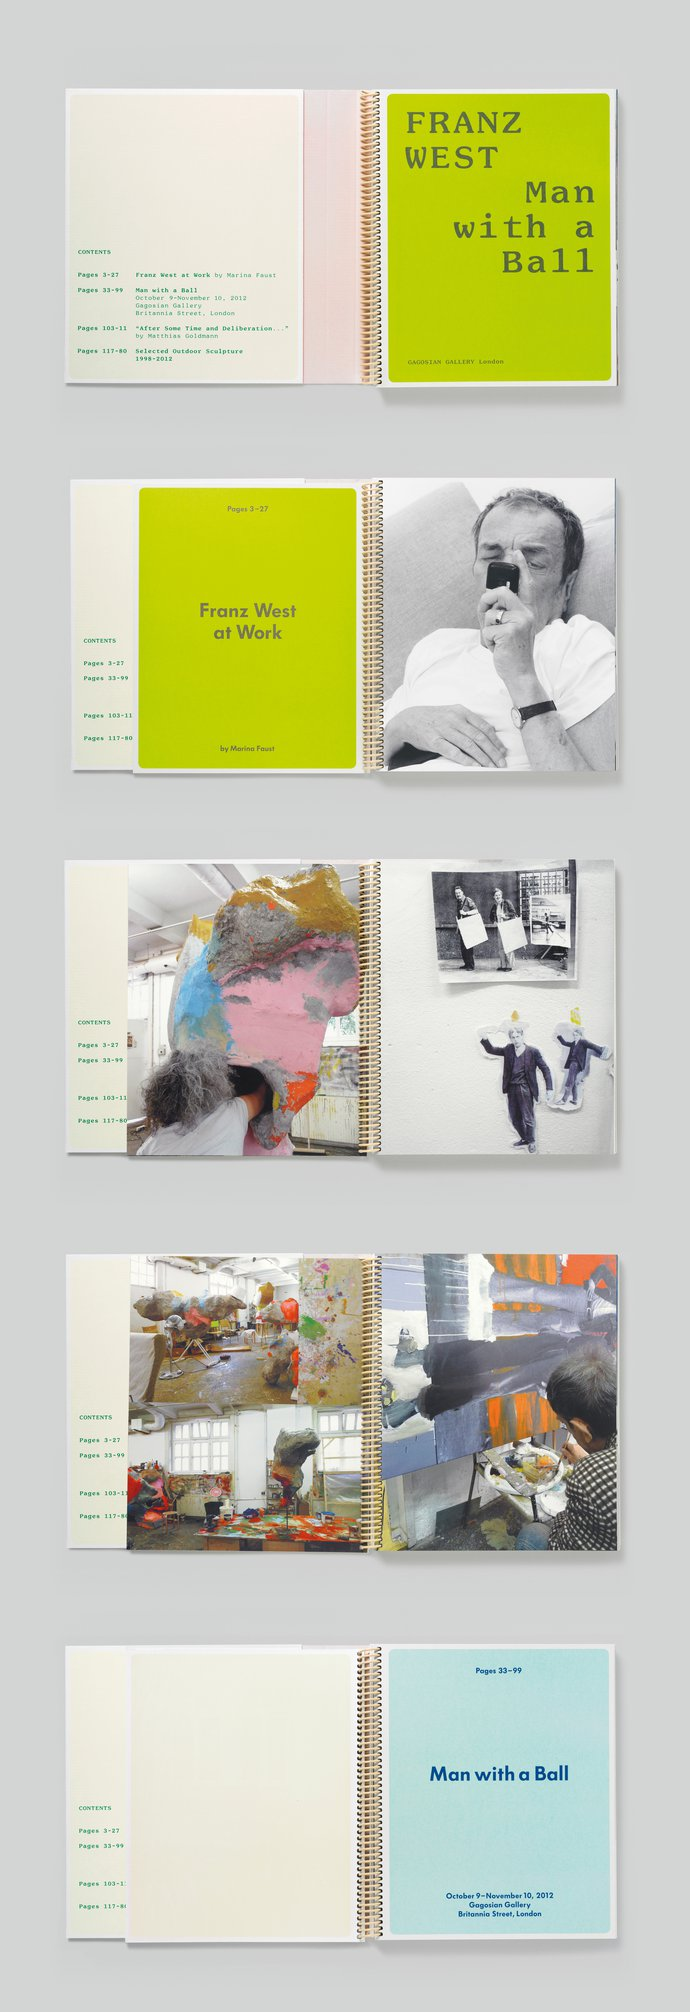 Gagosian – Franz West: Man with a Ball, 2012 (Publication), image 3